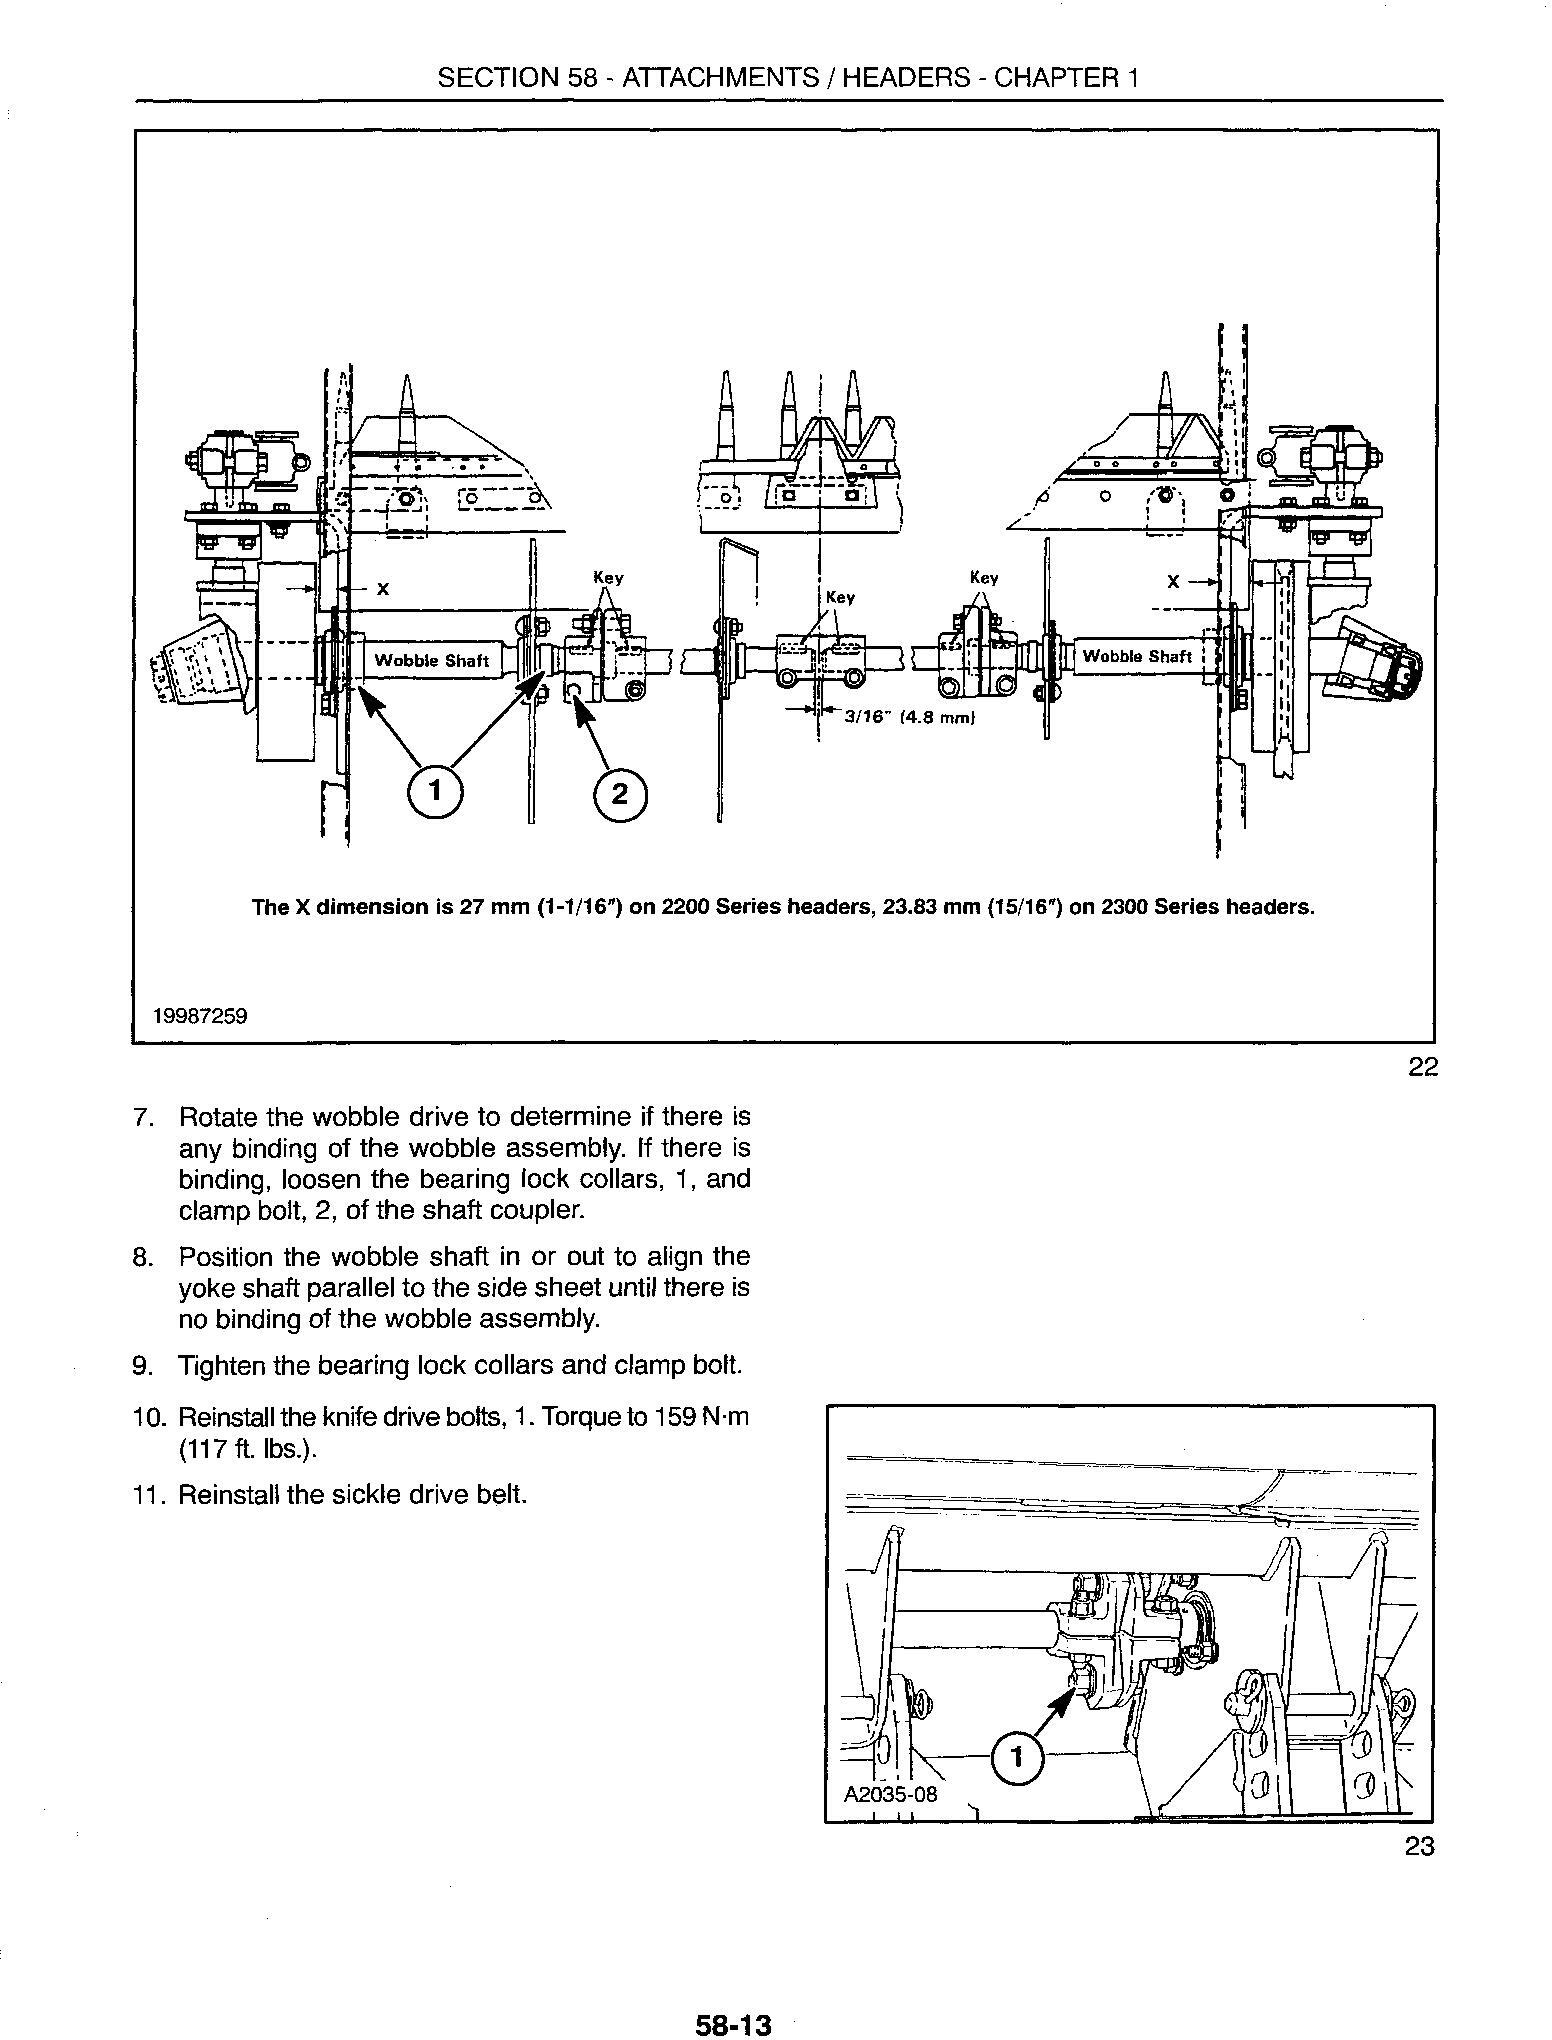 New Holland 2212, 2214, 2216, 2218, 2322, 2324, 2326, 2328 Swather Heads Service Manual - 2